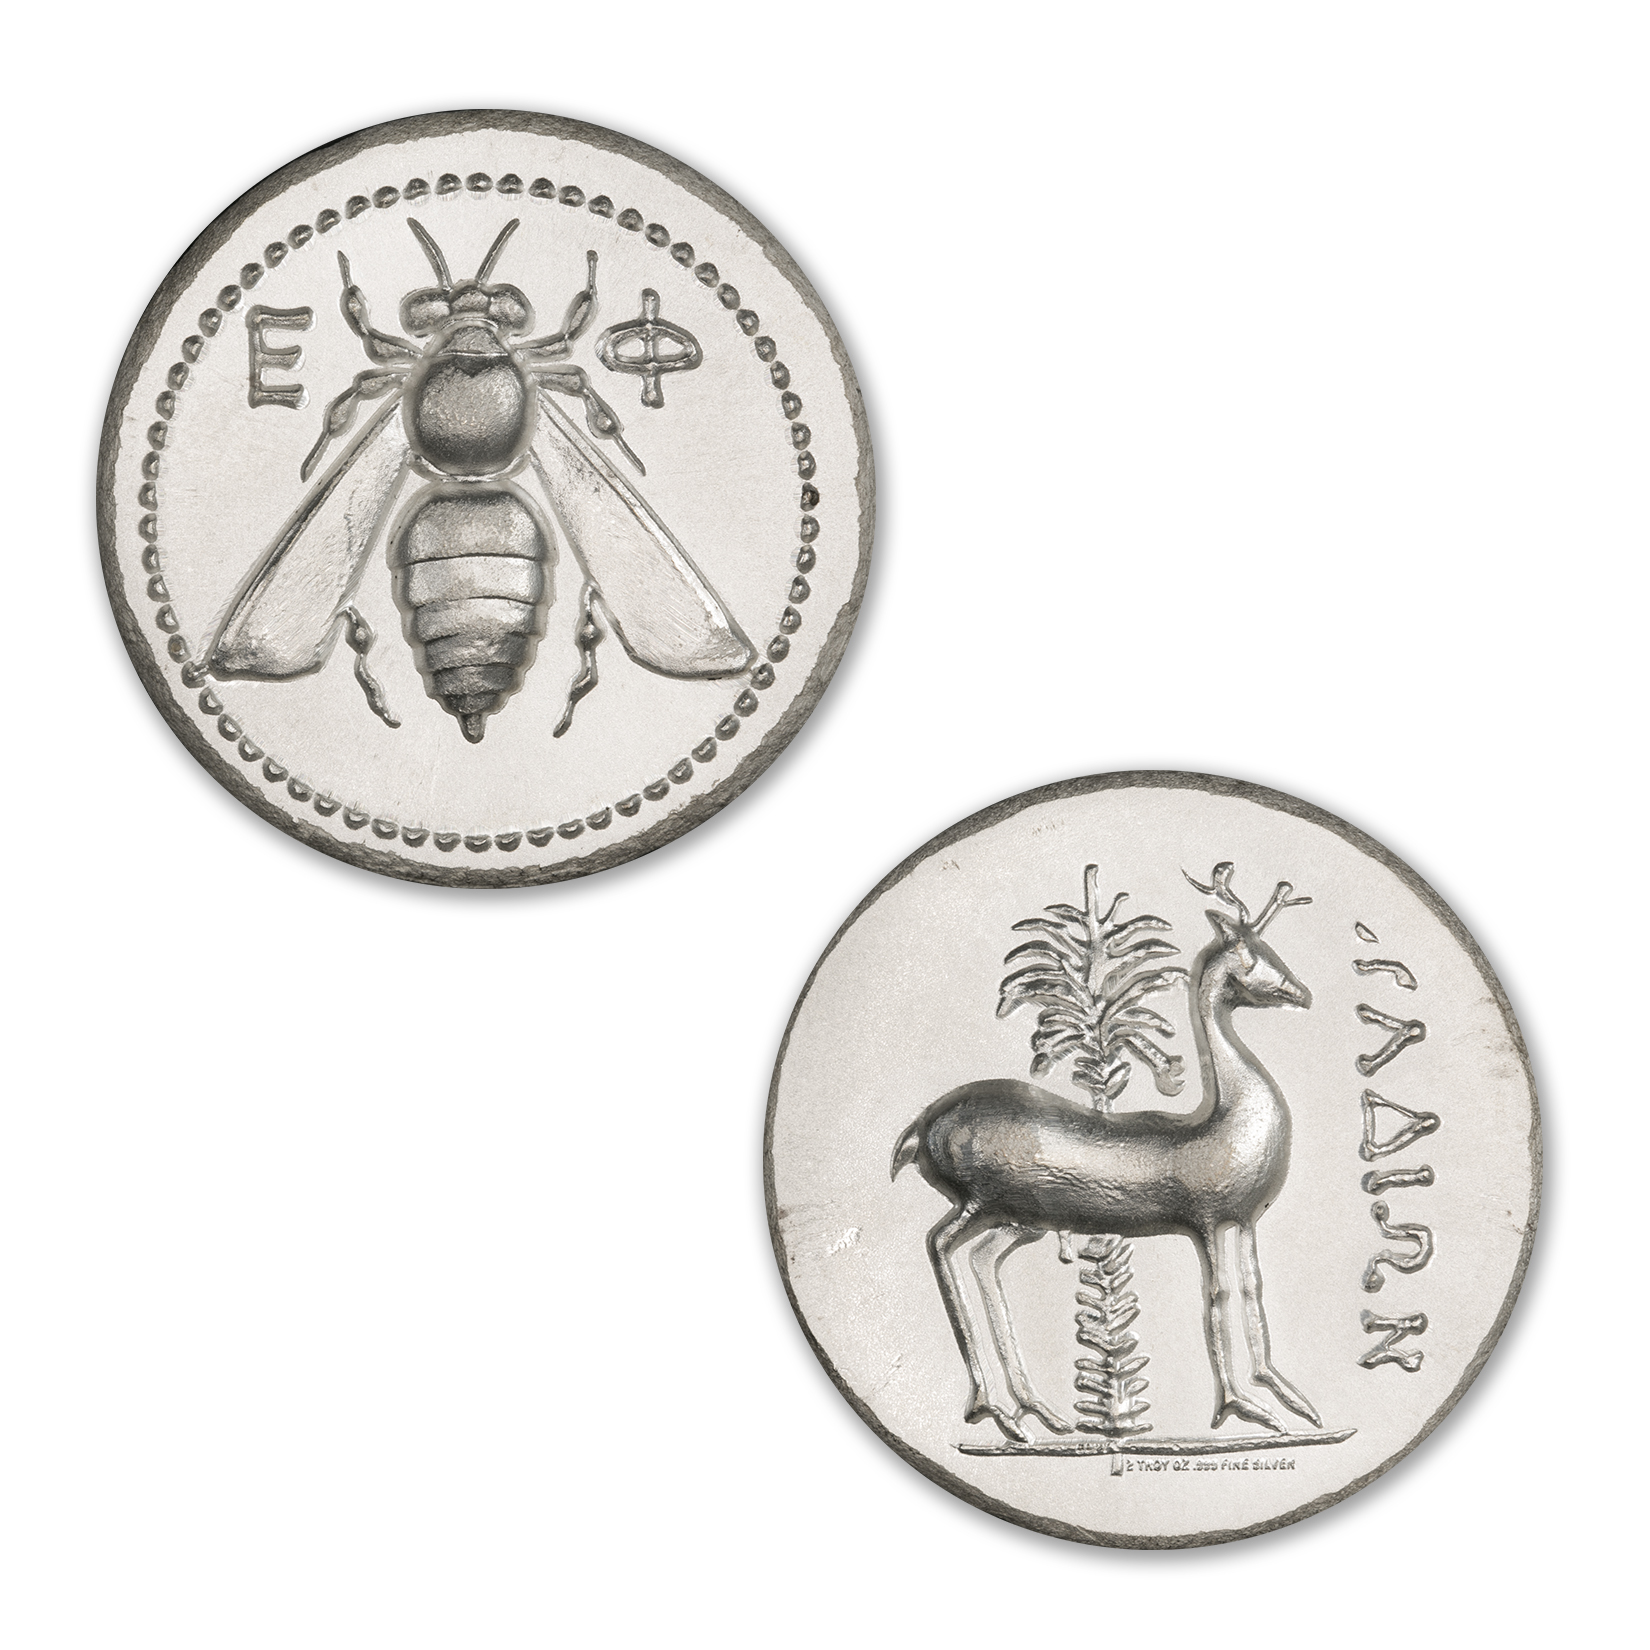 EPHESUS TETRADRACHM – STAG AND BEE – UHR – 2 TROY OUNCE – 36MM – BU FINISH –  (LIMITED MINTAGE: 1,000)